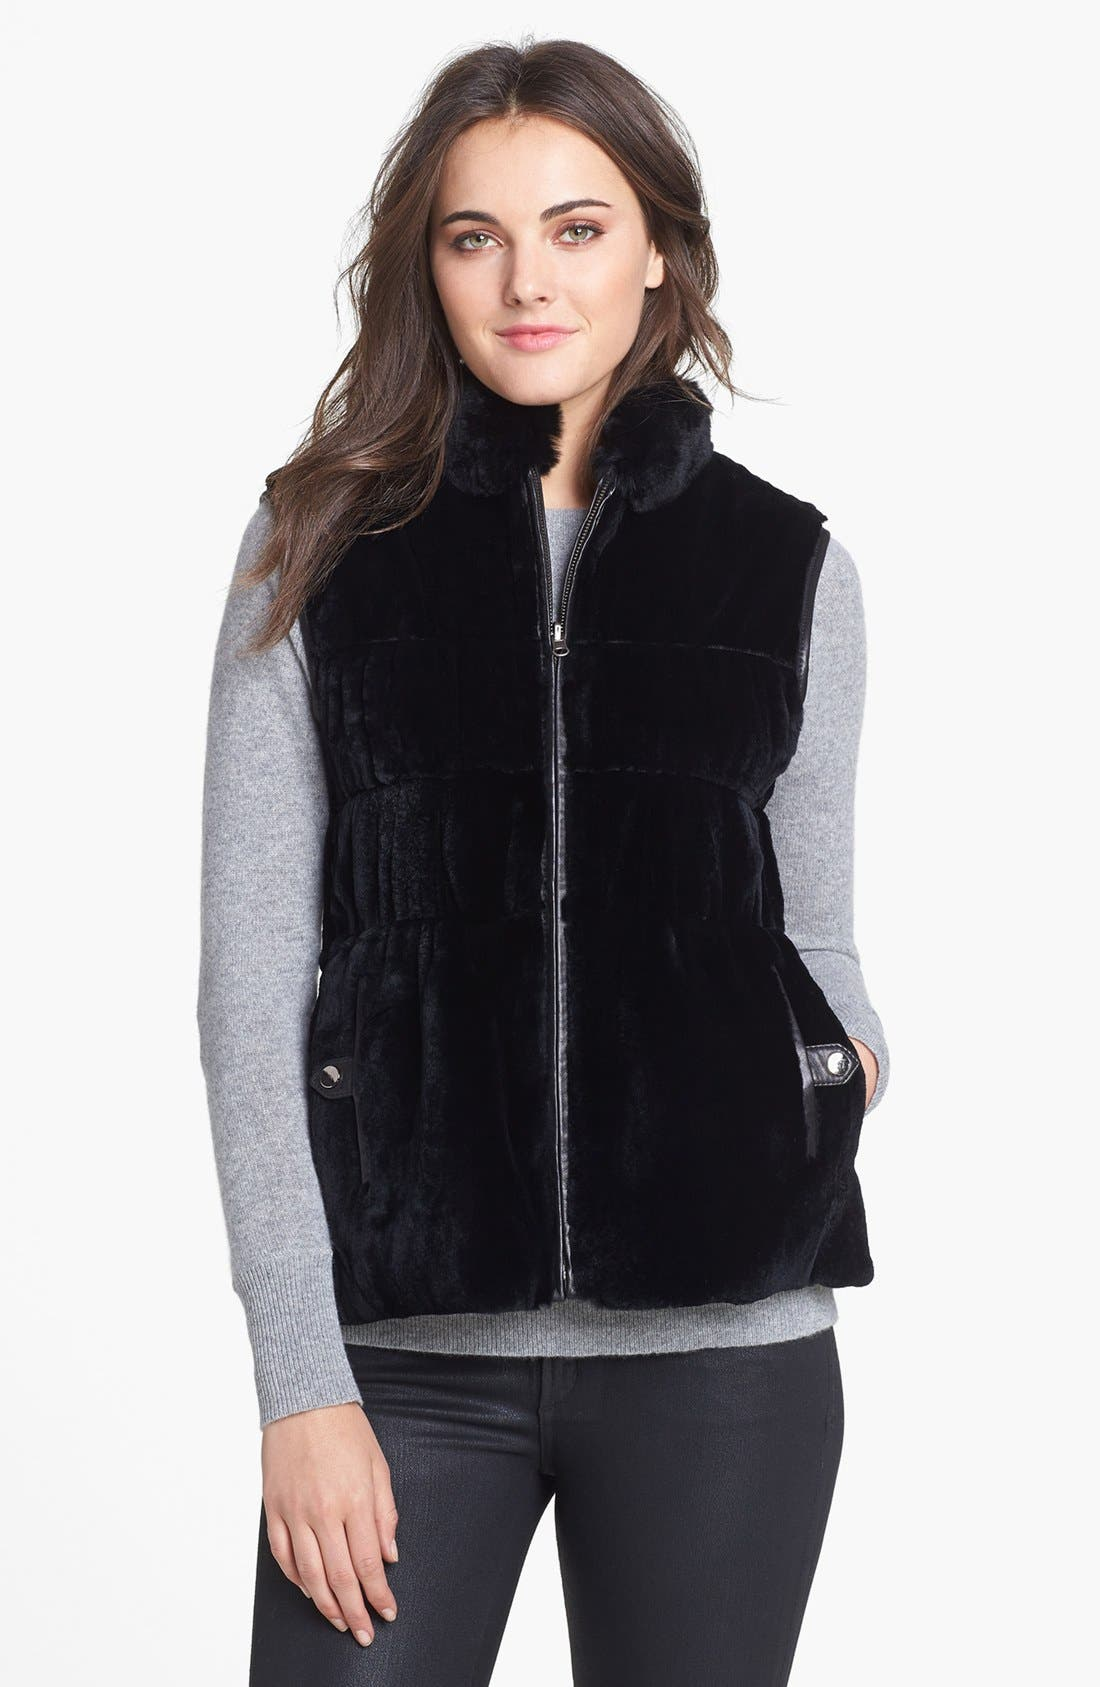 Main Image - Chosen Furs Reversible Rabbit Fur & Lambskin Leather Vest